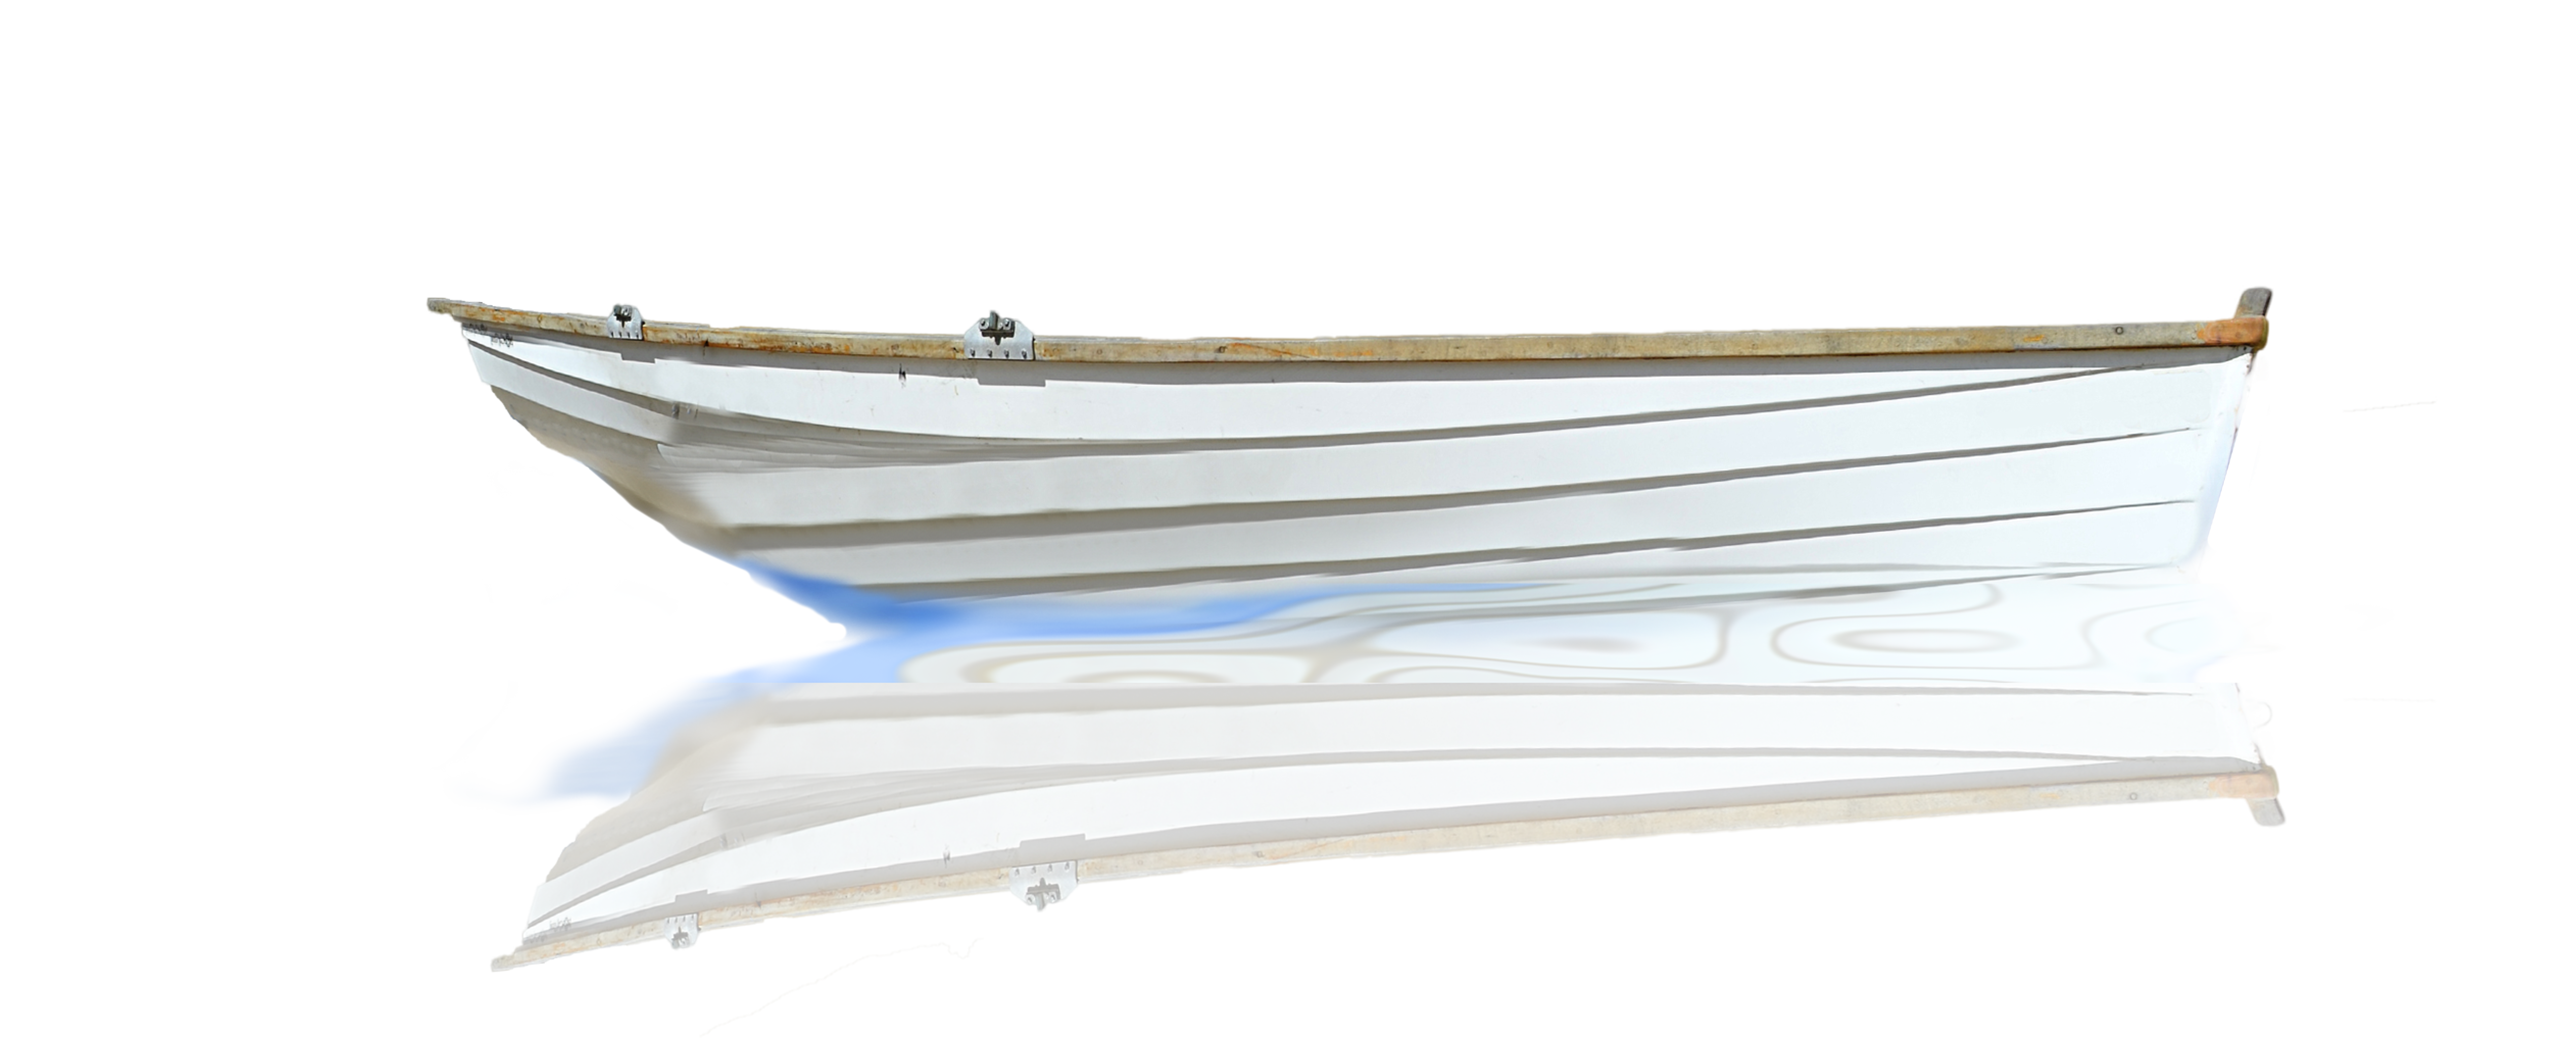 Transparent boats row. Download boat free png